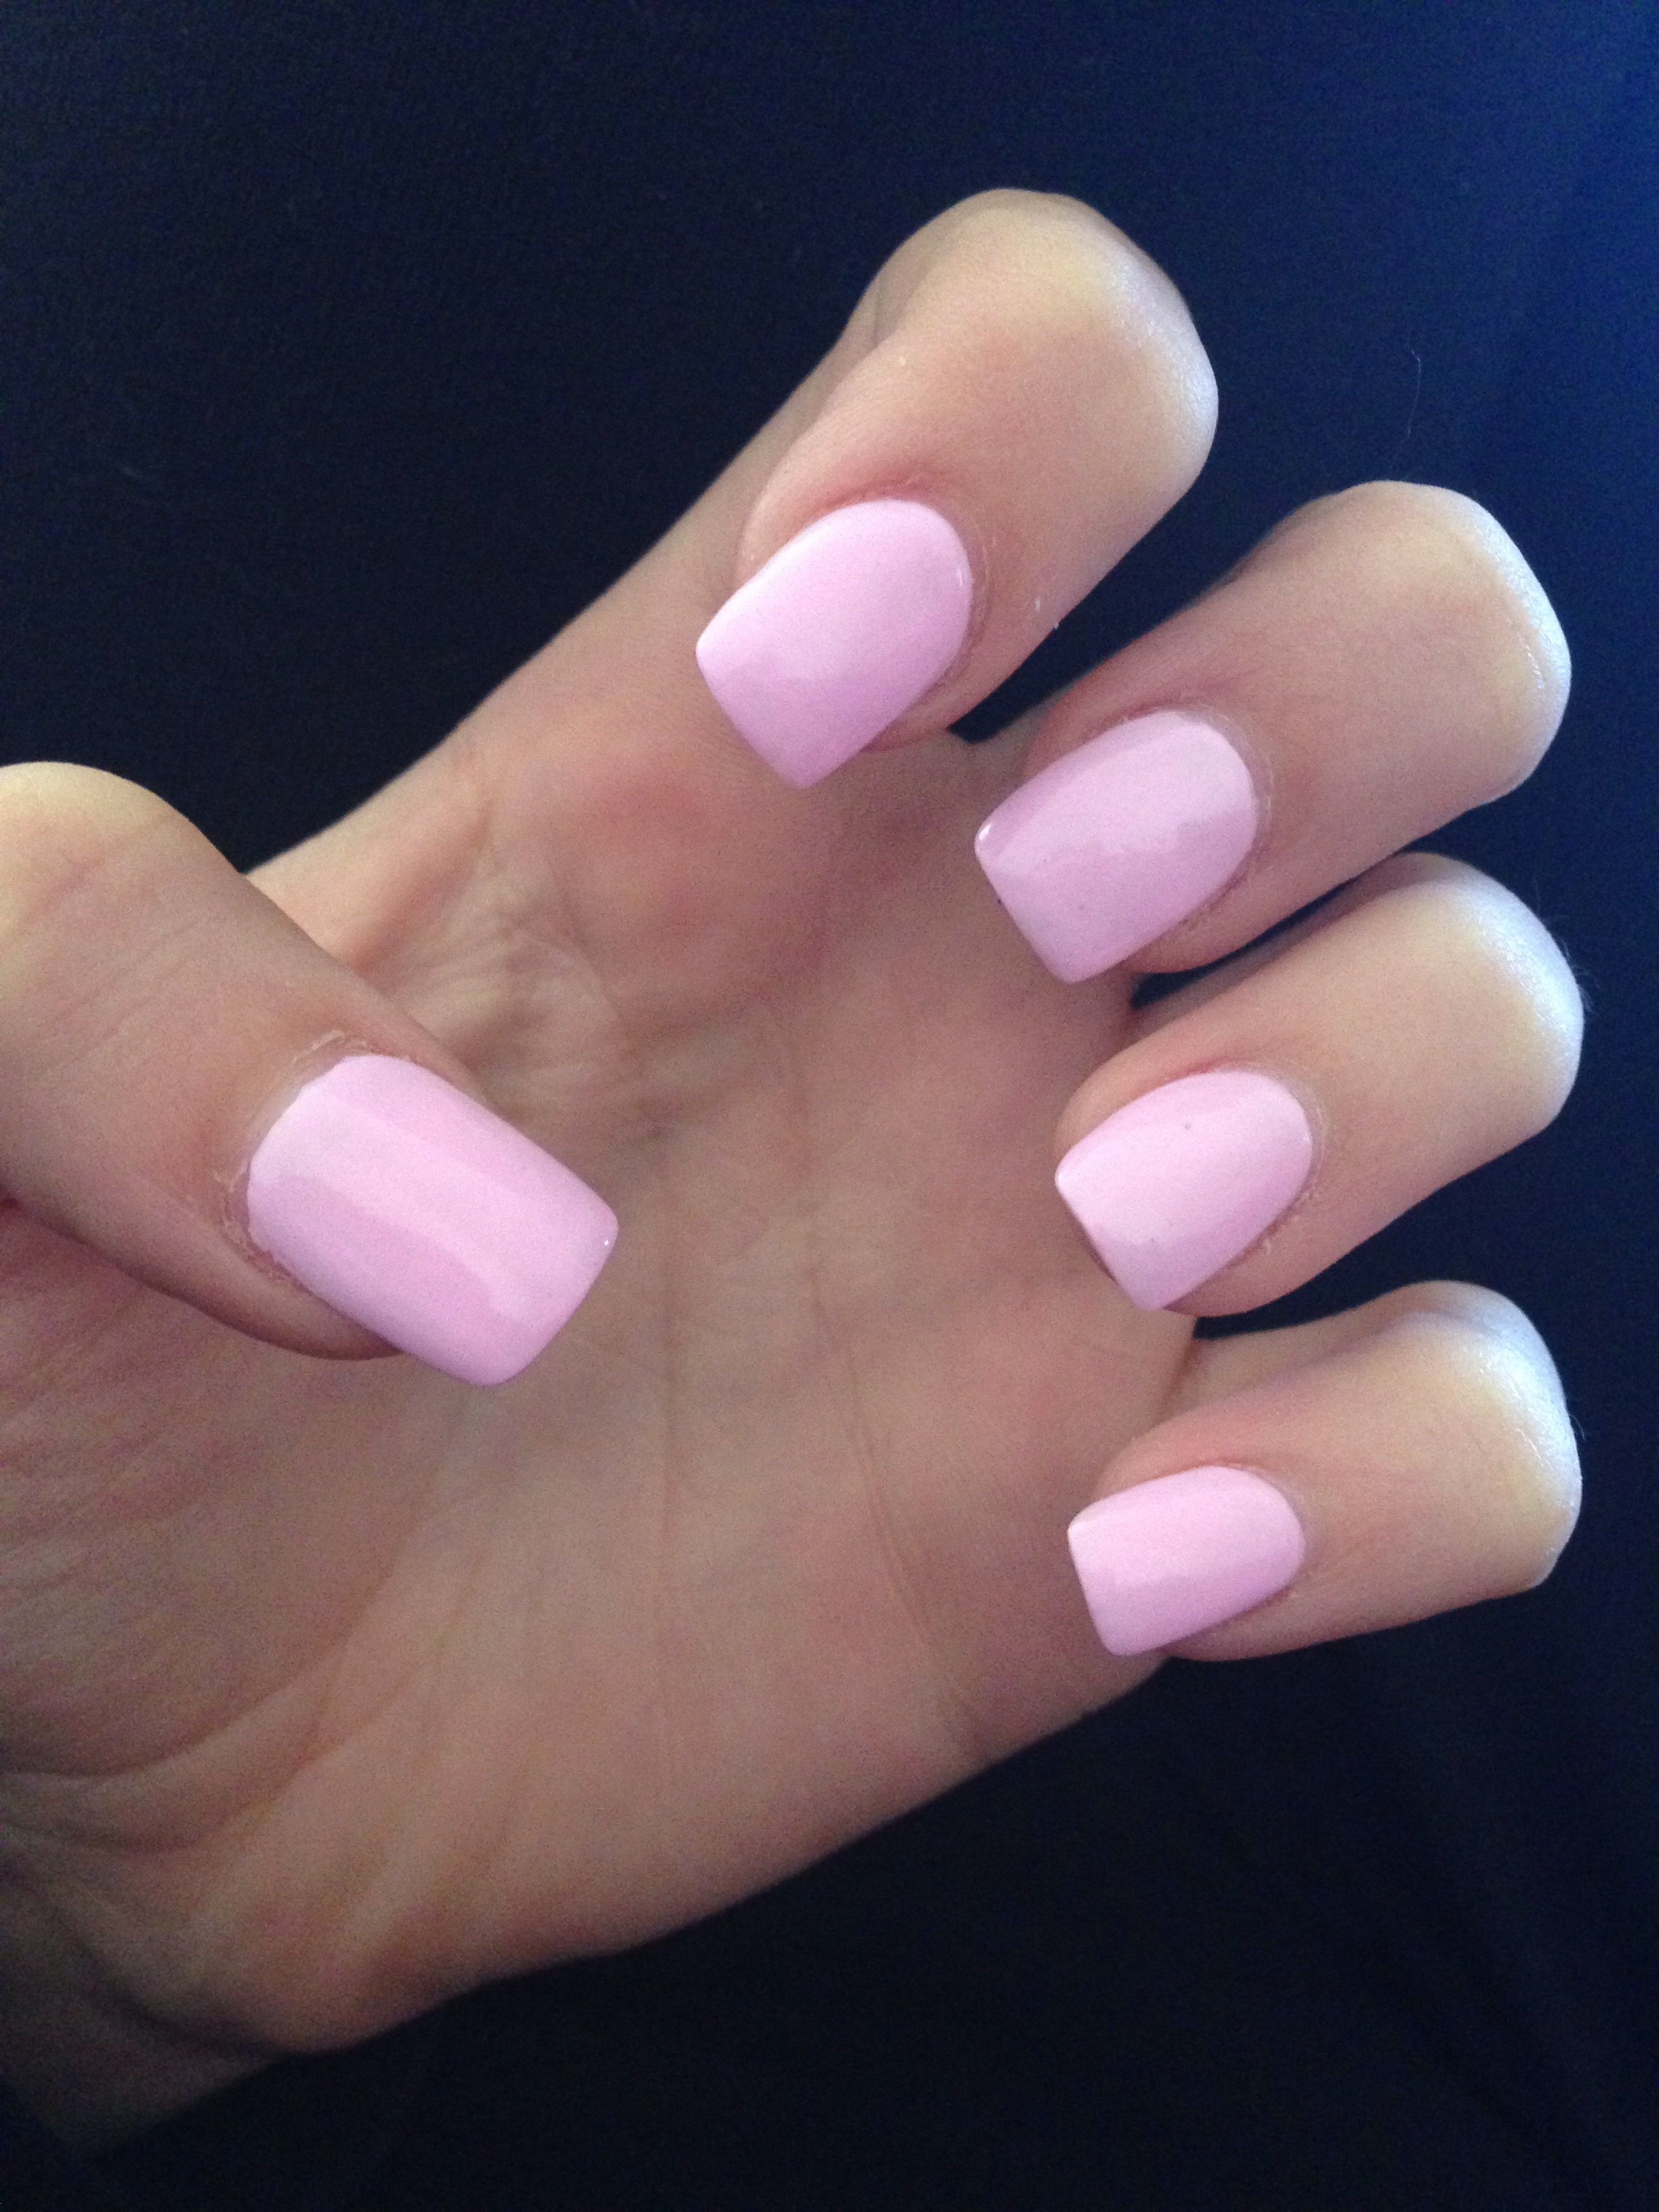 Acrylic Nails With Flowers: Light Pink Acrylic Nails